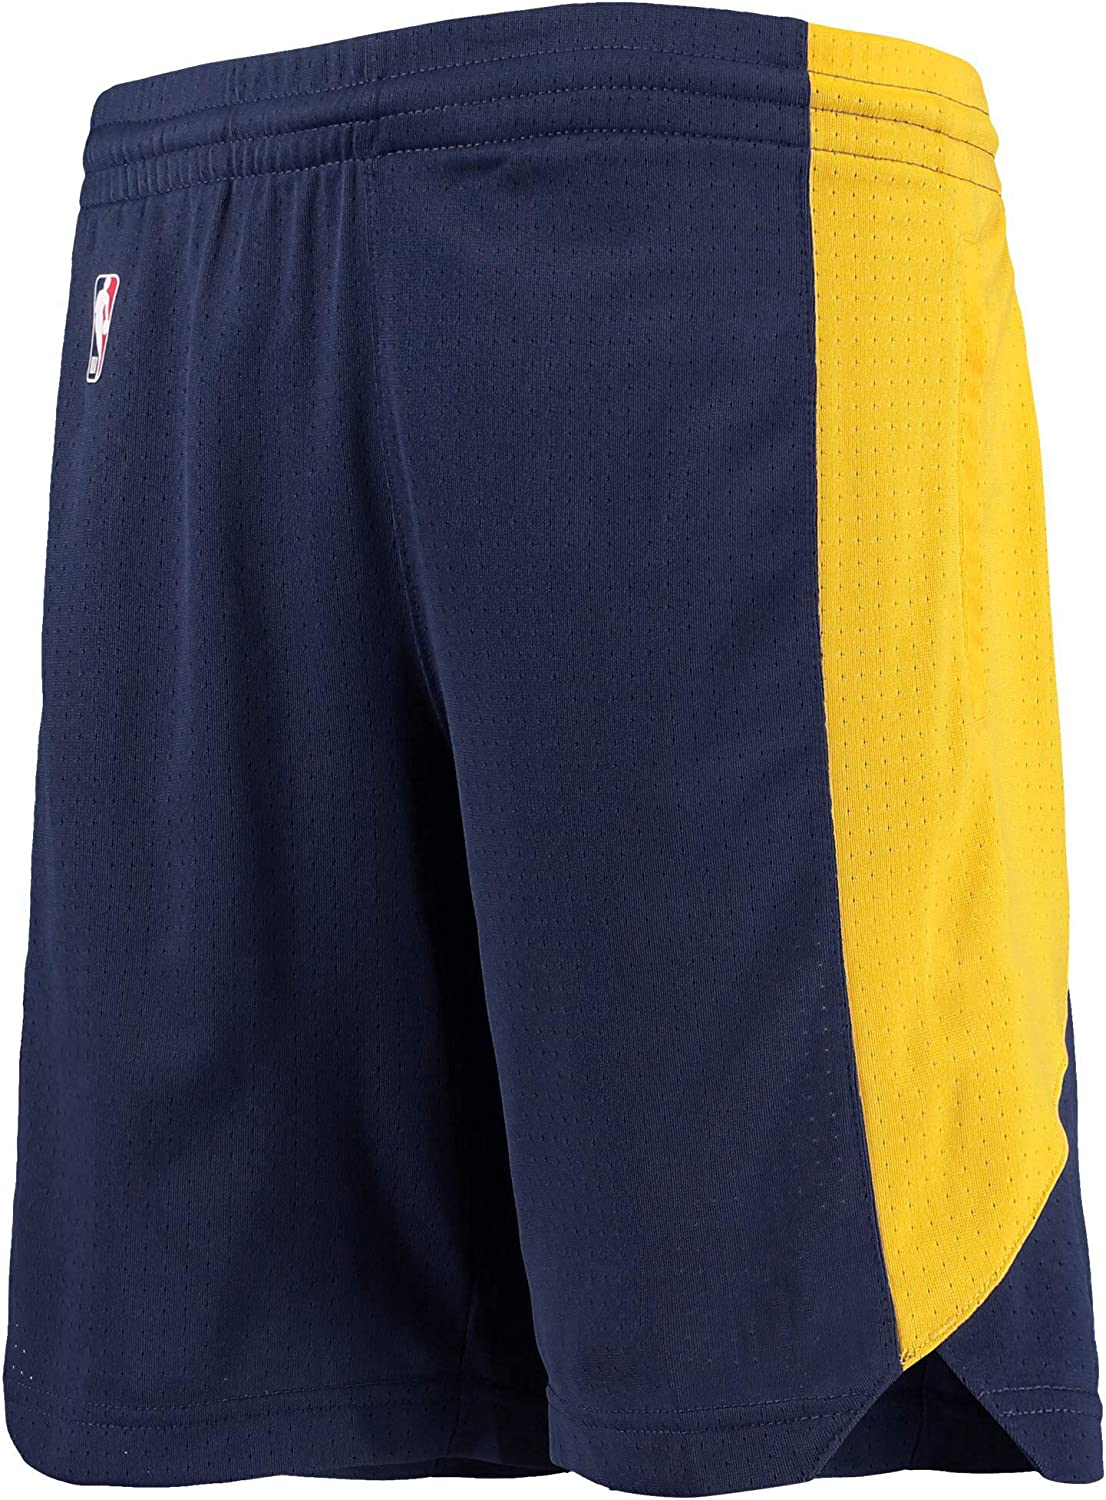 Outerstuff NBA Youth 8-20 Primary Logo Performance Practice Shorts